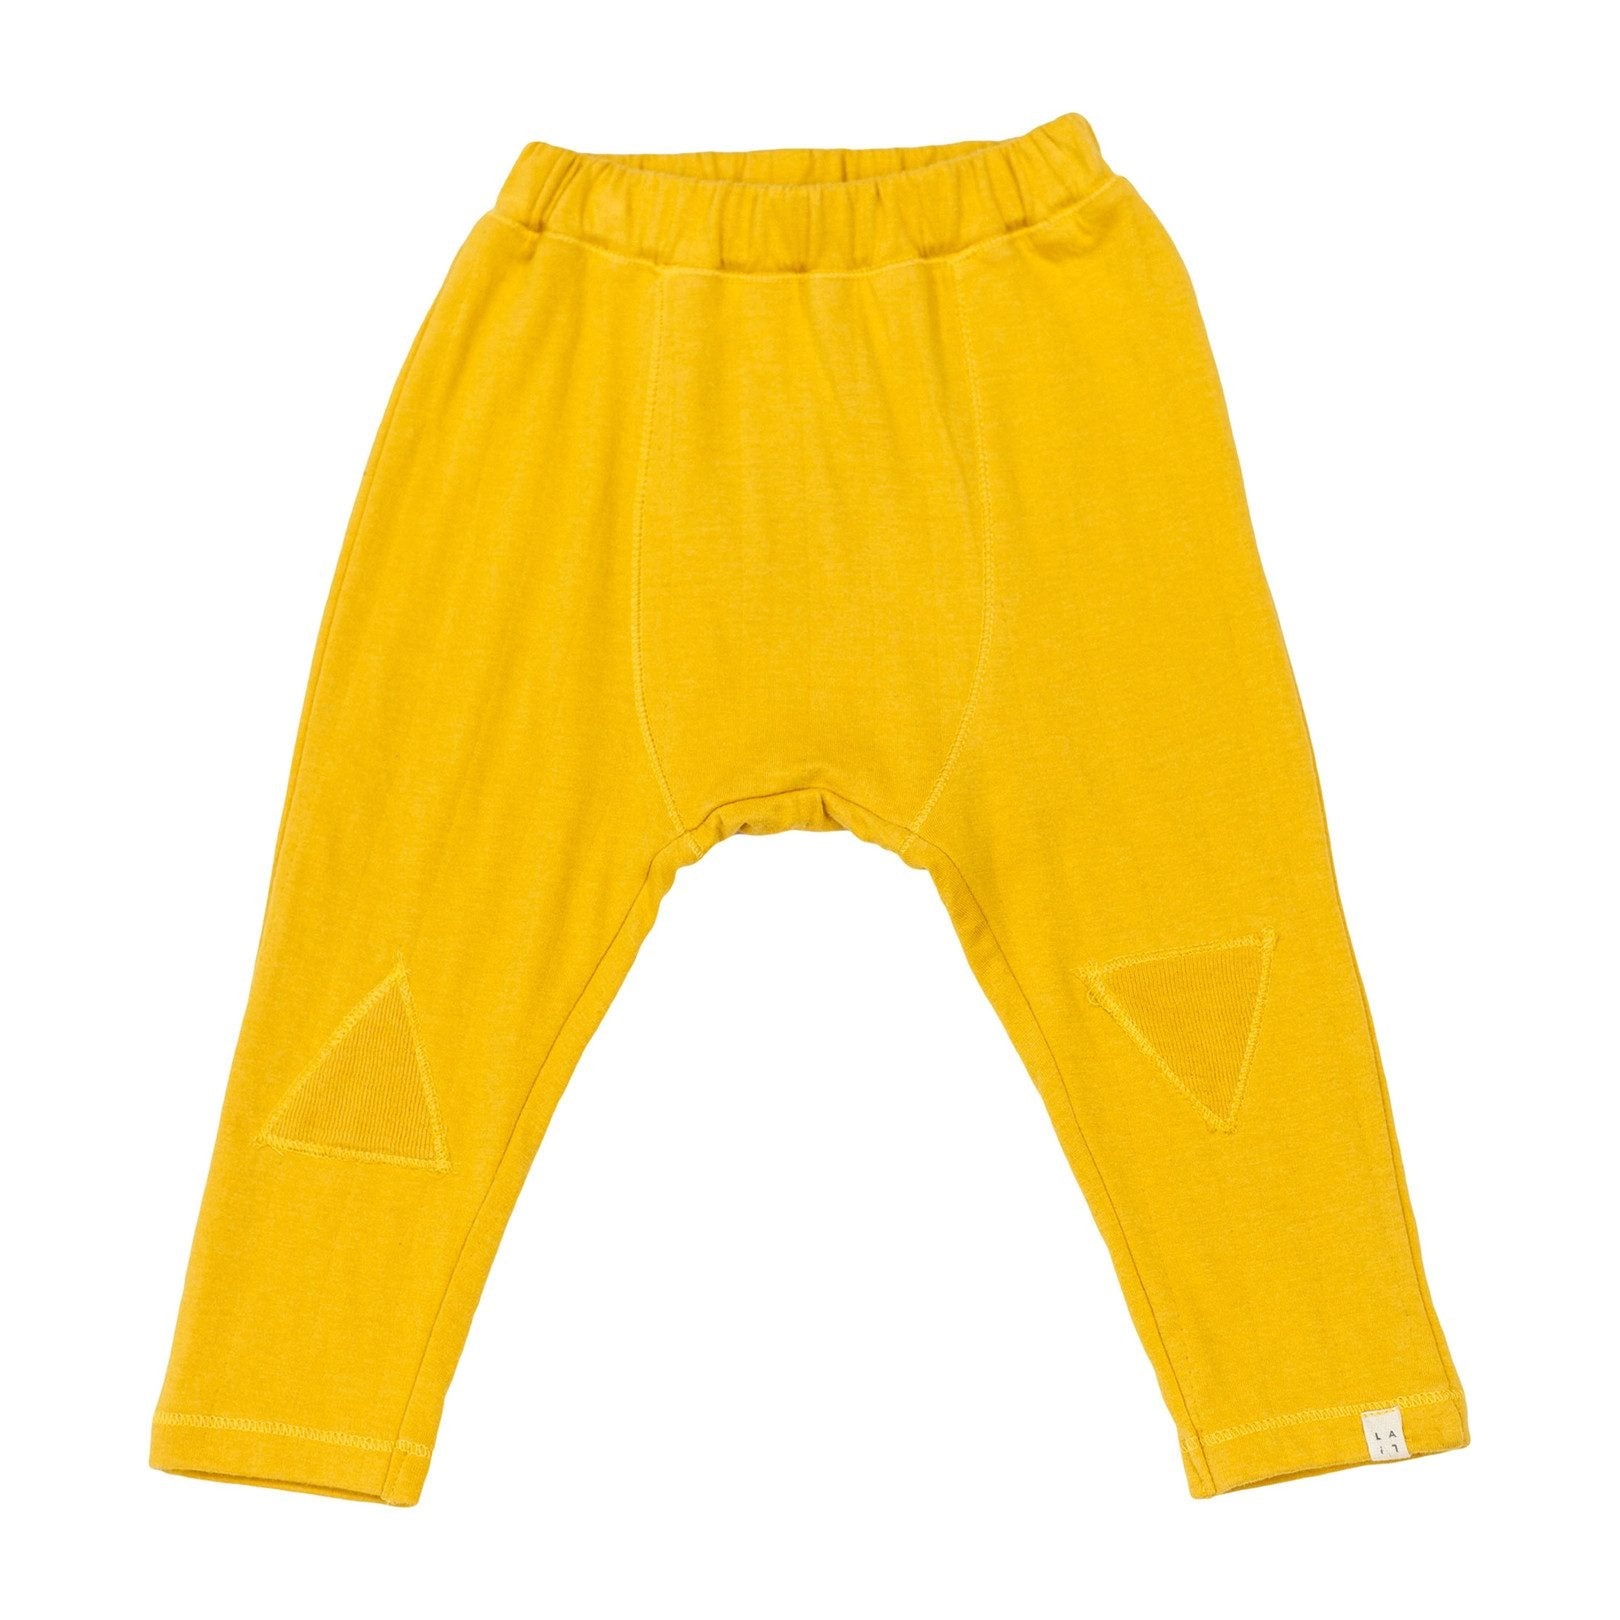 PATCHWORK PANTS, MUSTARD | SPINELBOUTIQUE - Spinel Boutique